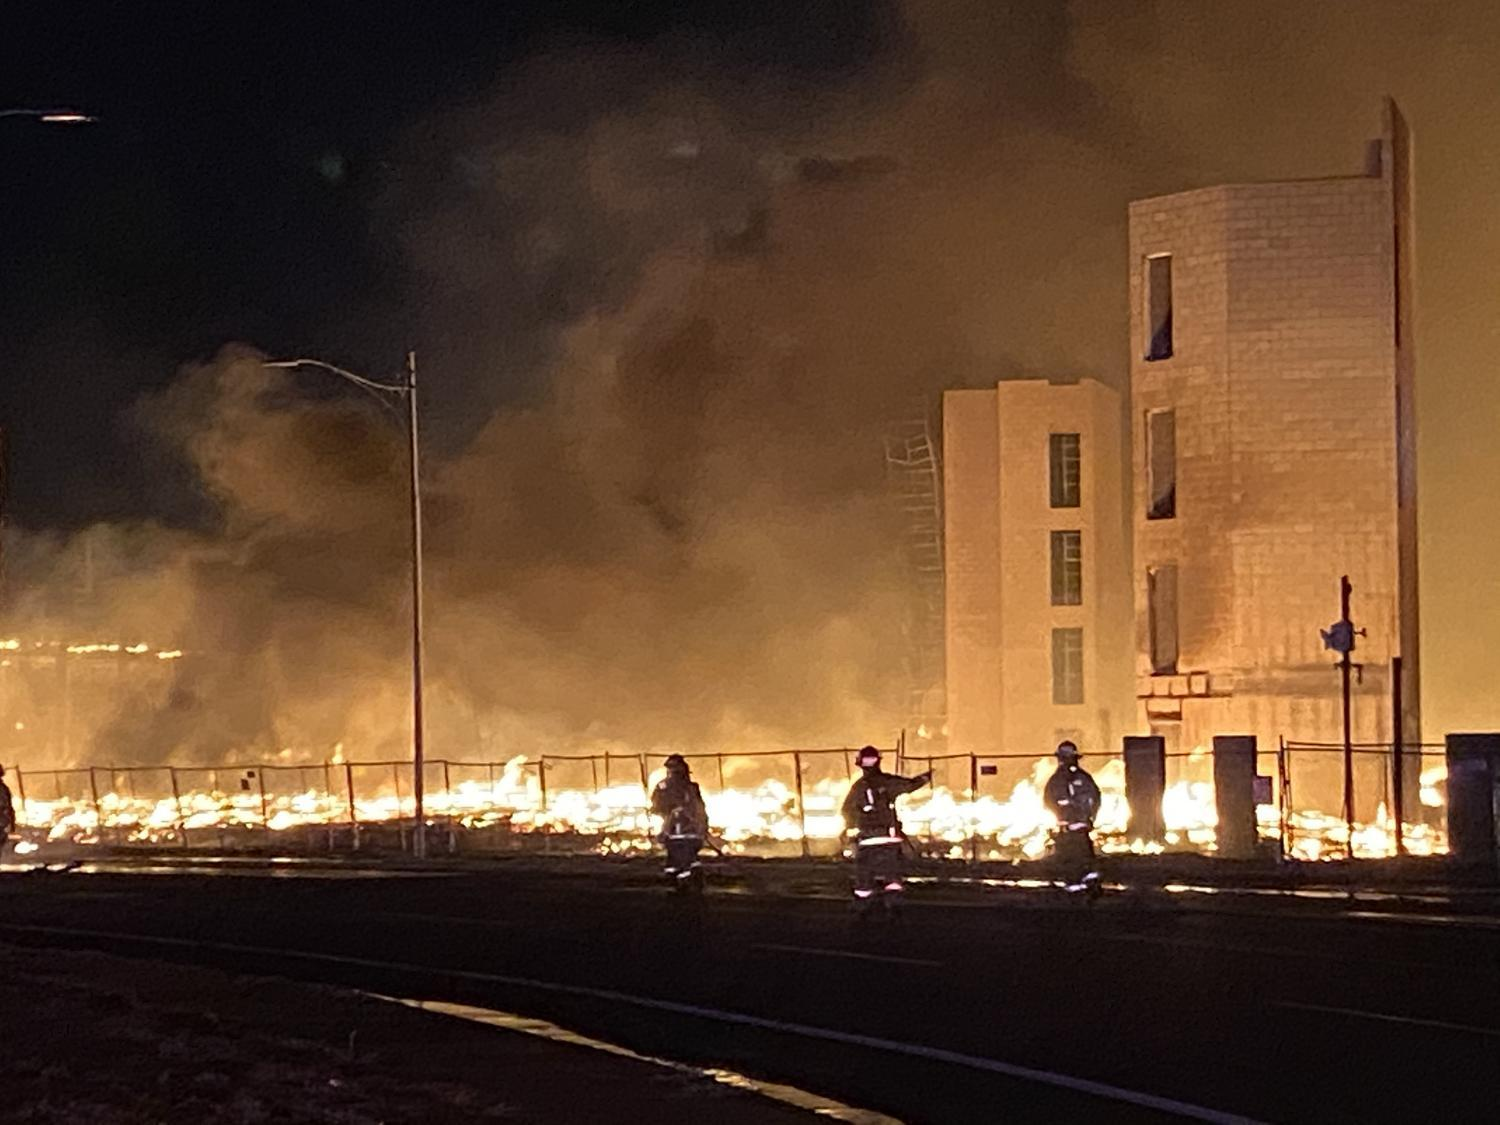 Firefighters fight a 2-alarm fire at a construction site in downtown Phoenix on Jun. 7, 2020, which investigators ruled arson.